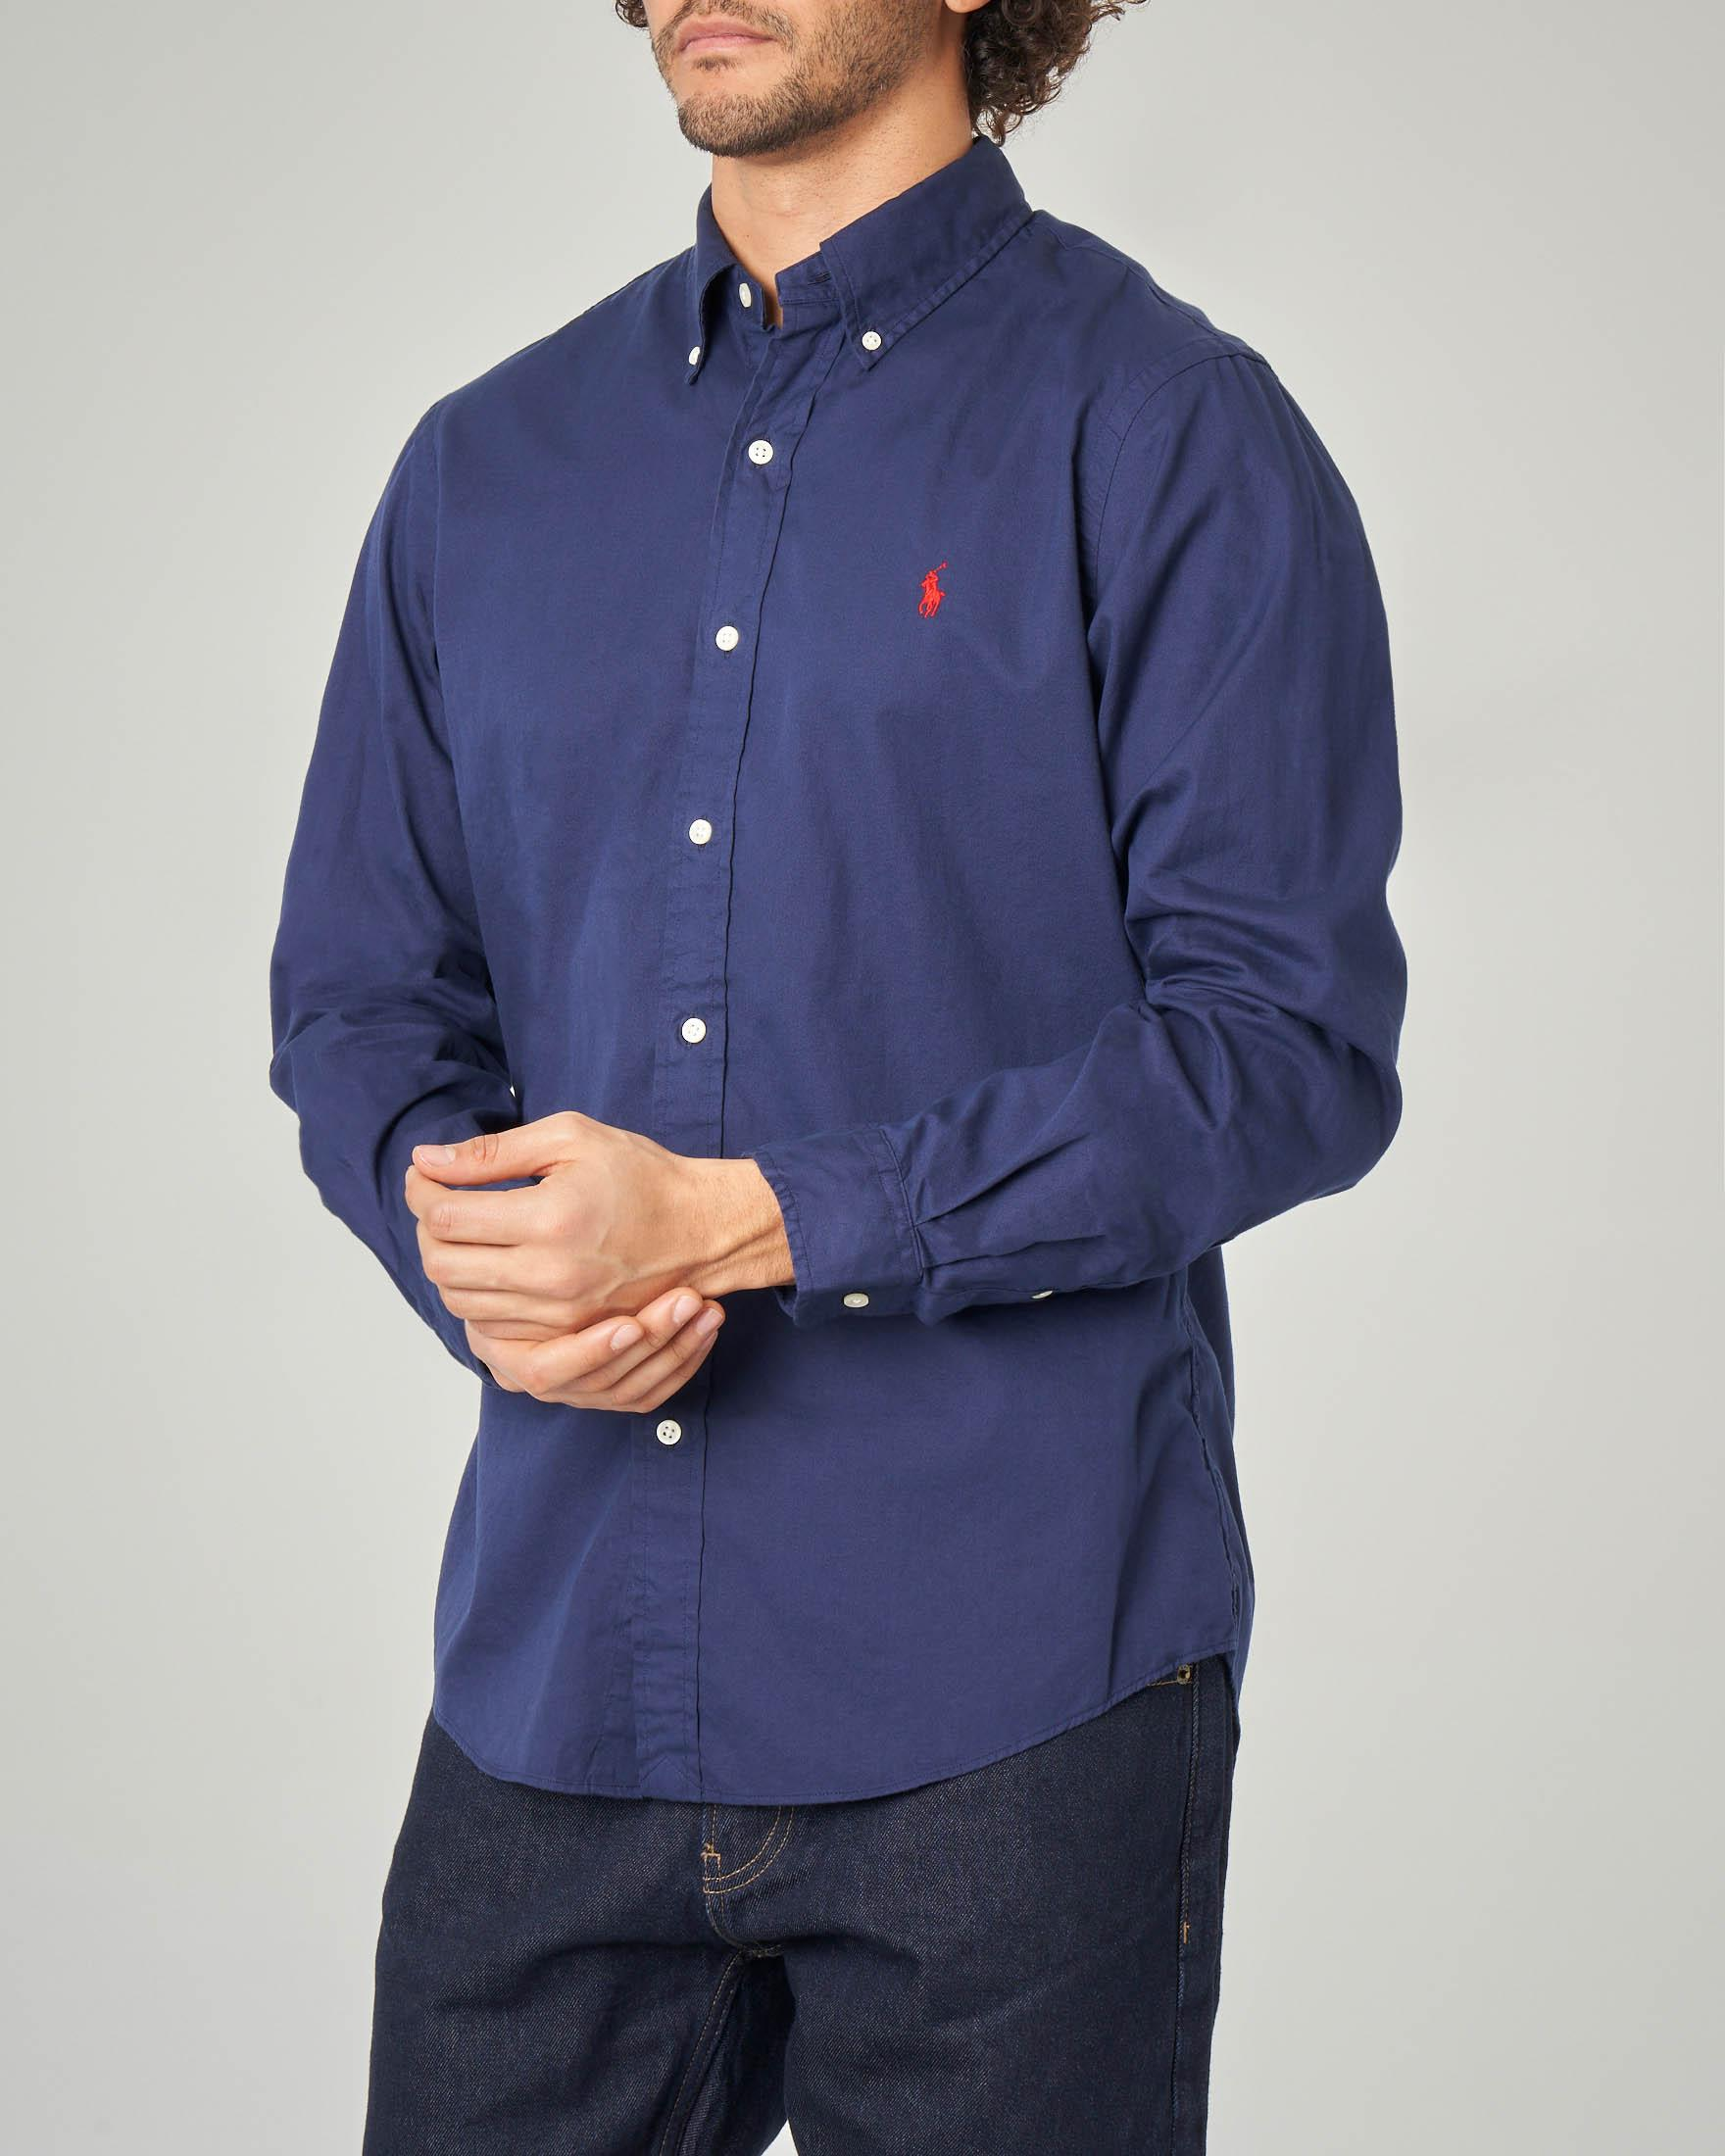 Camicia blu button down in twill di cotone